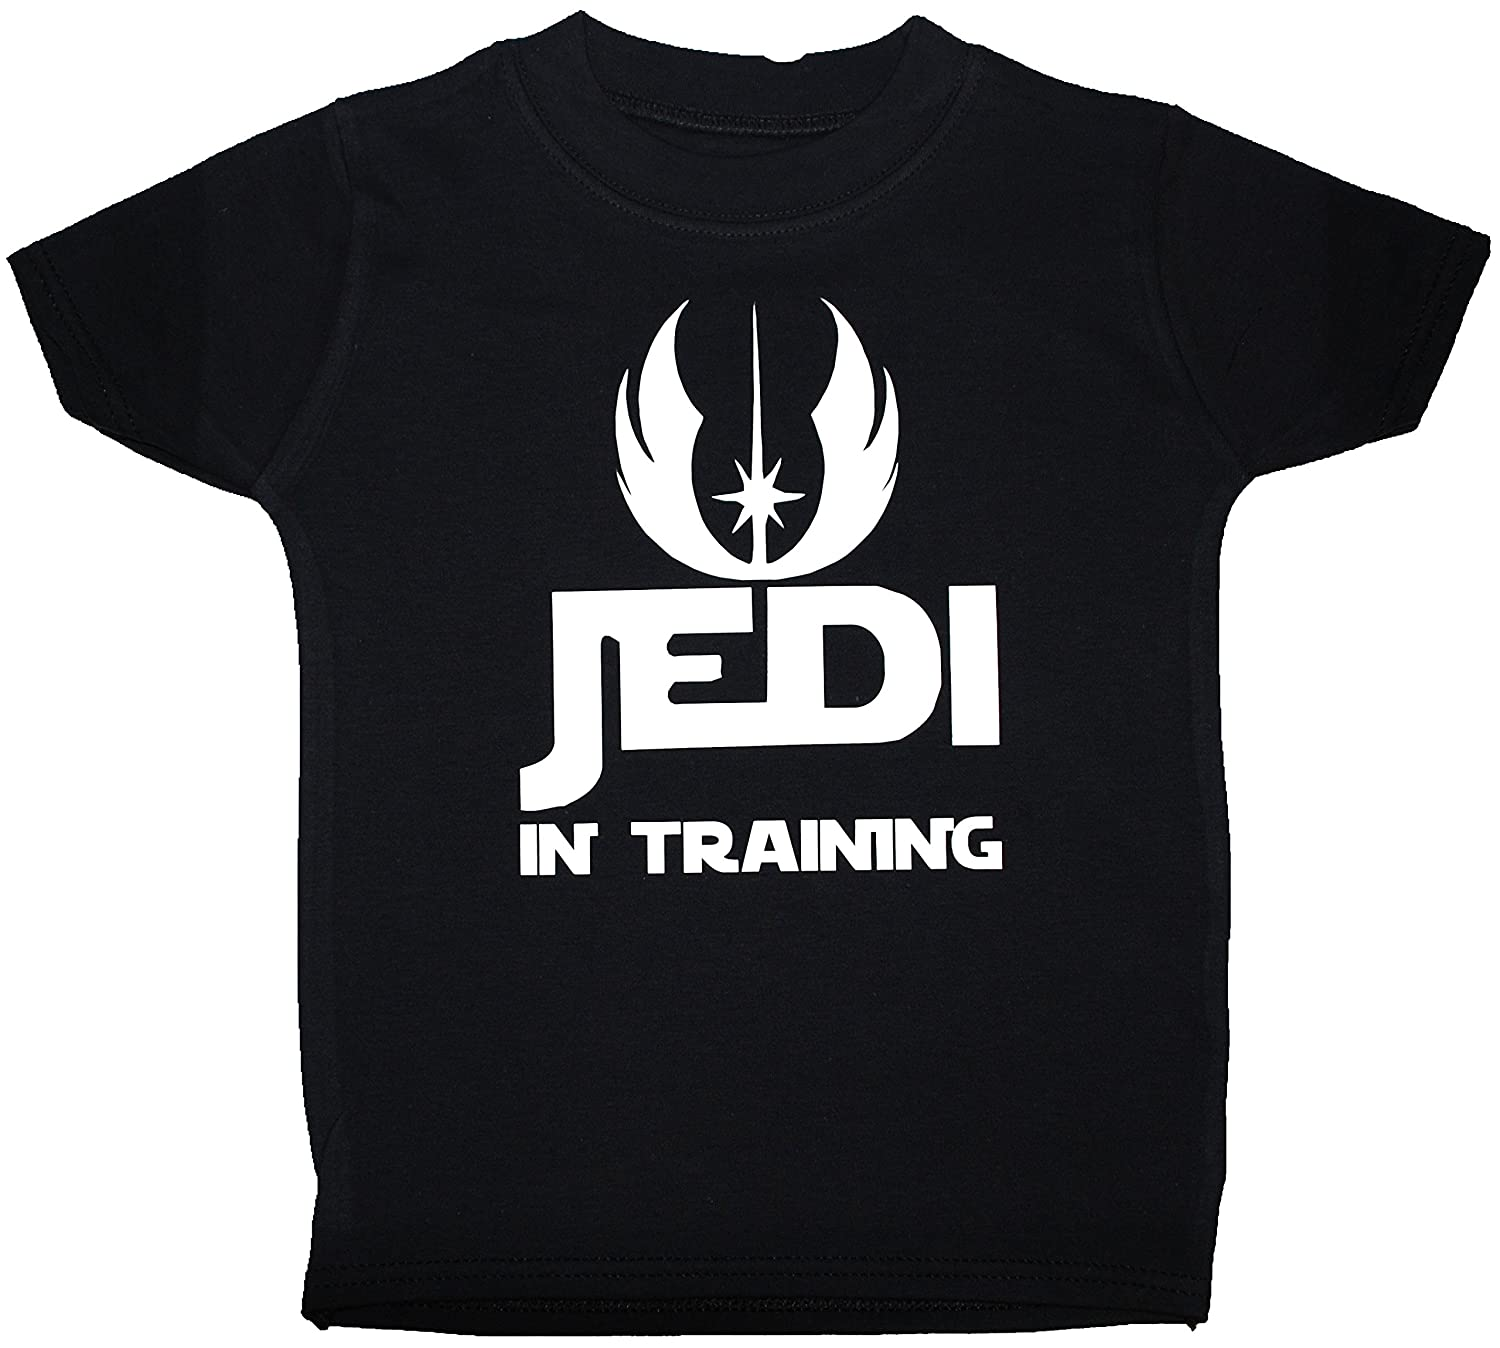 Jedi in Training Baby/Children T-Shirts/Tops Star Wars - 0-3 Months - Black Acce Products